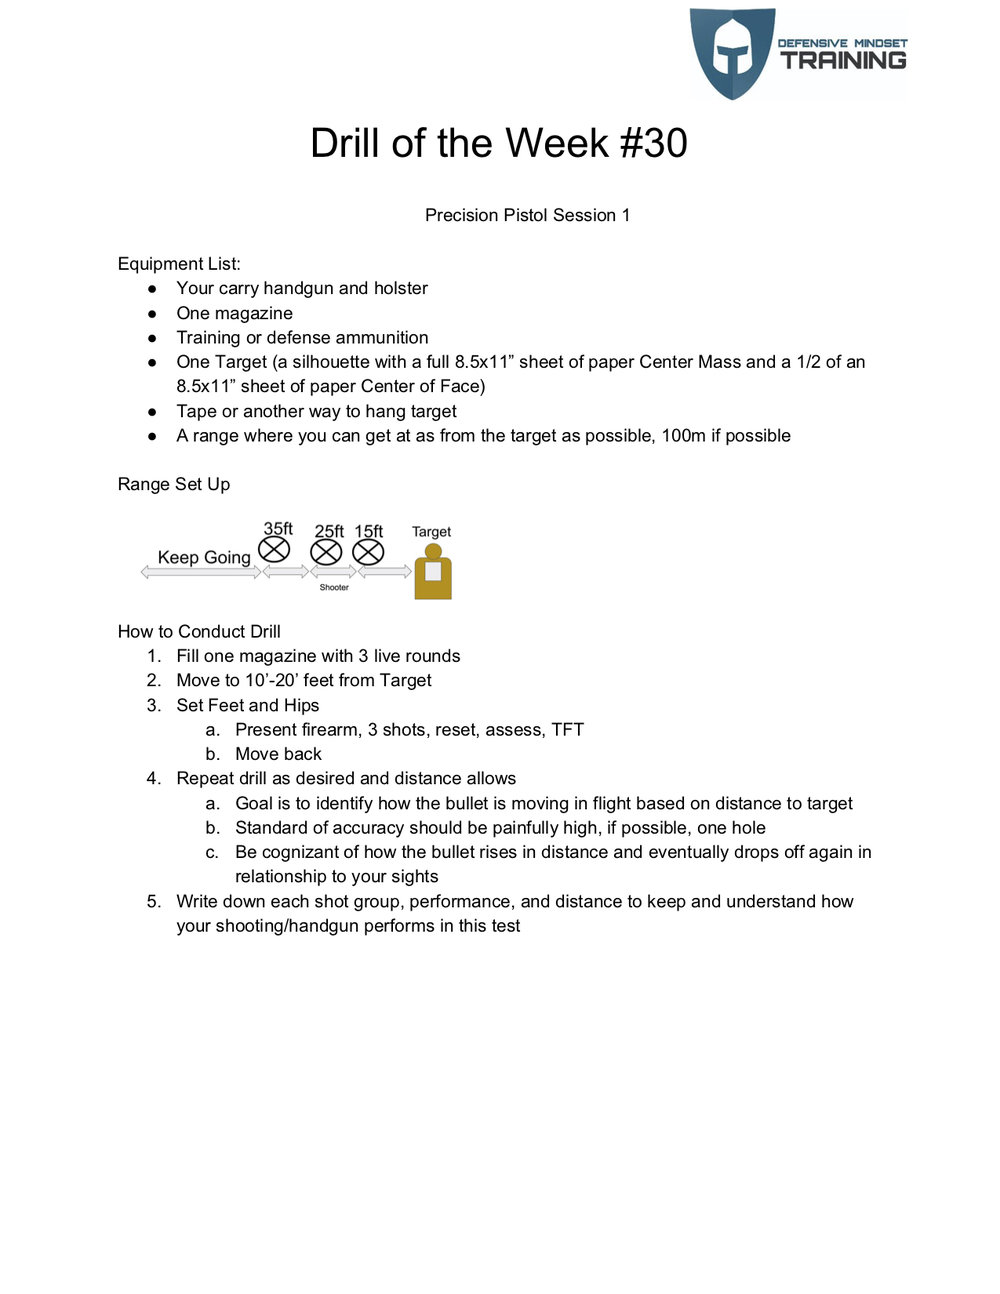 Drill of the Week #30.jpg